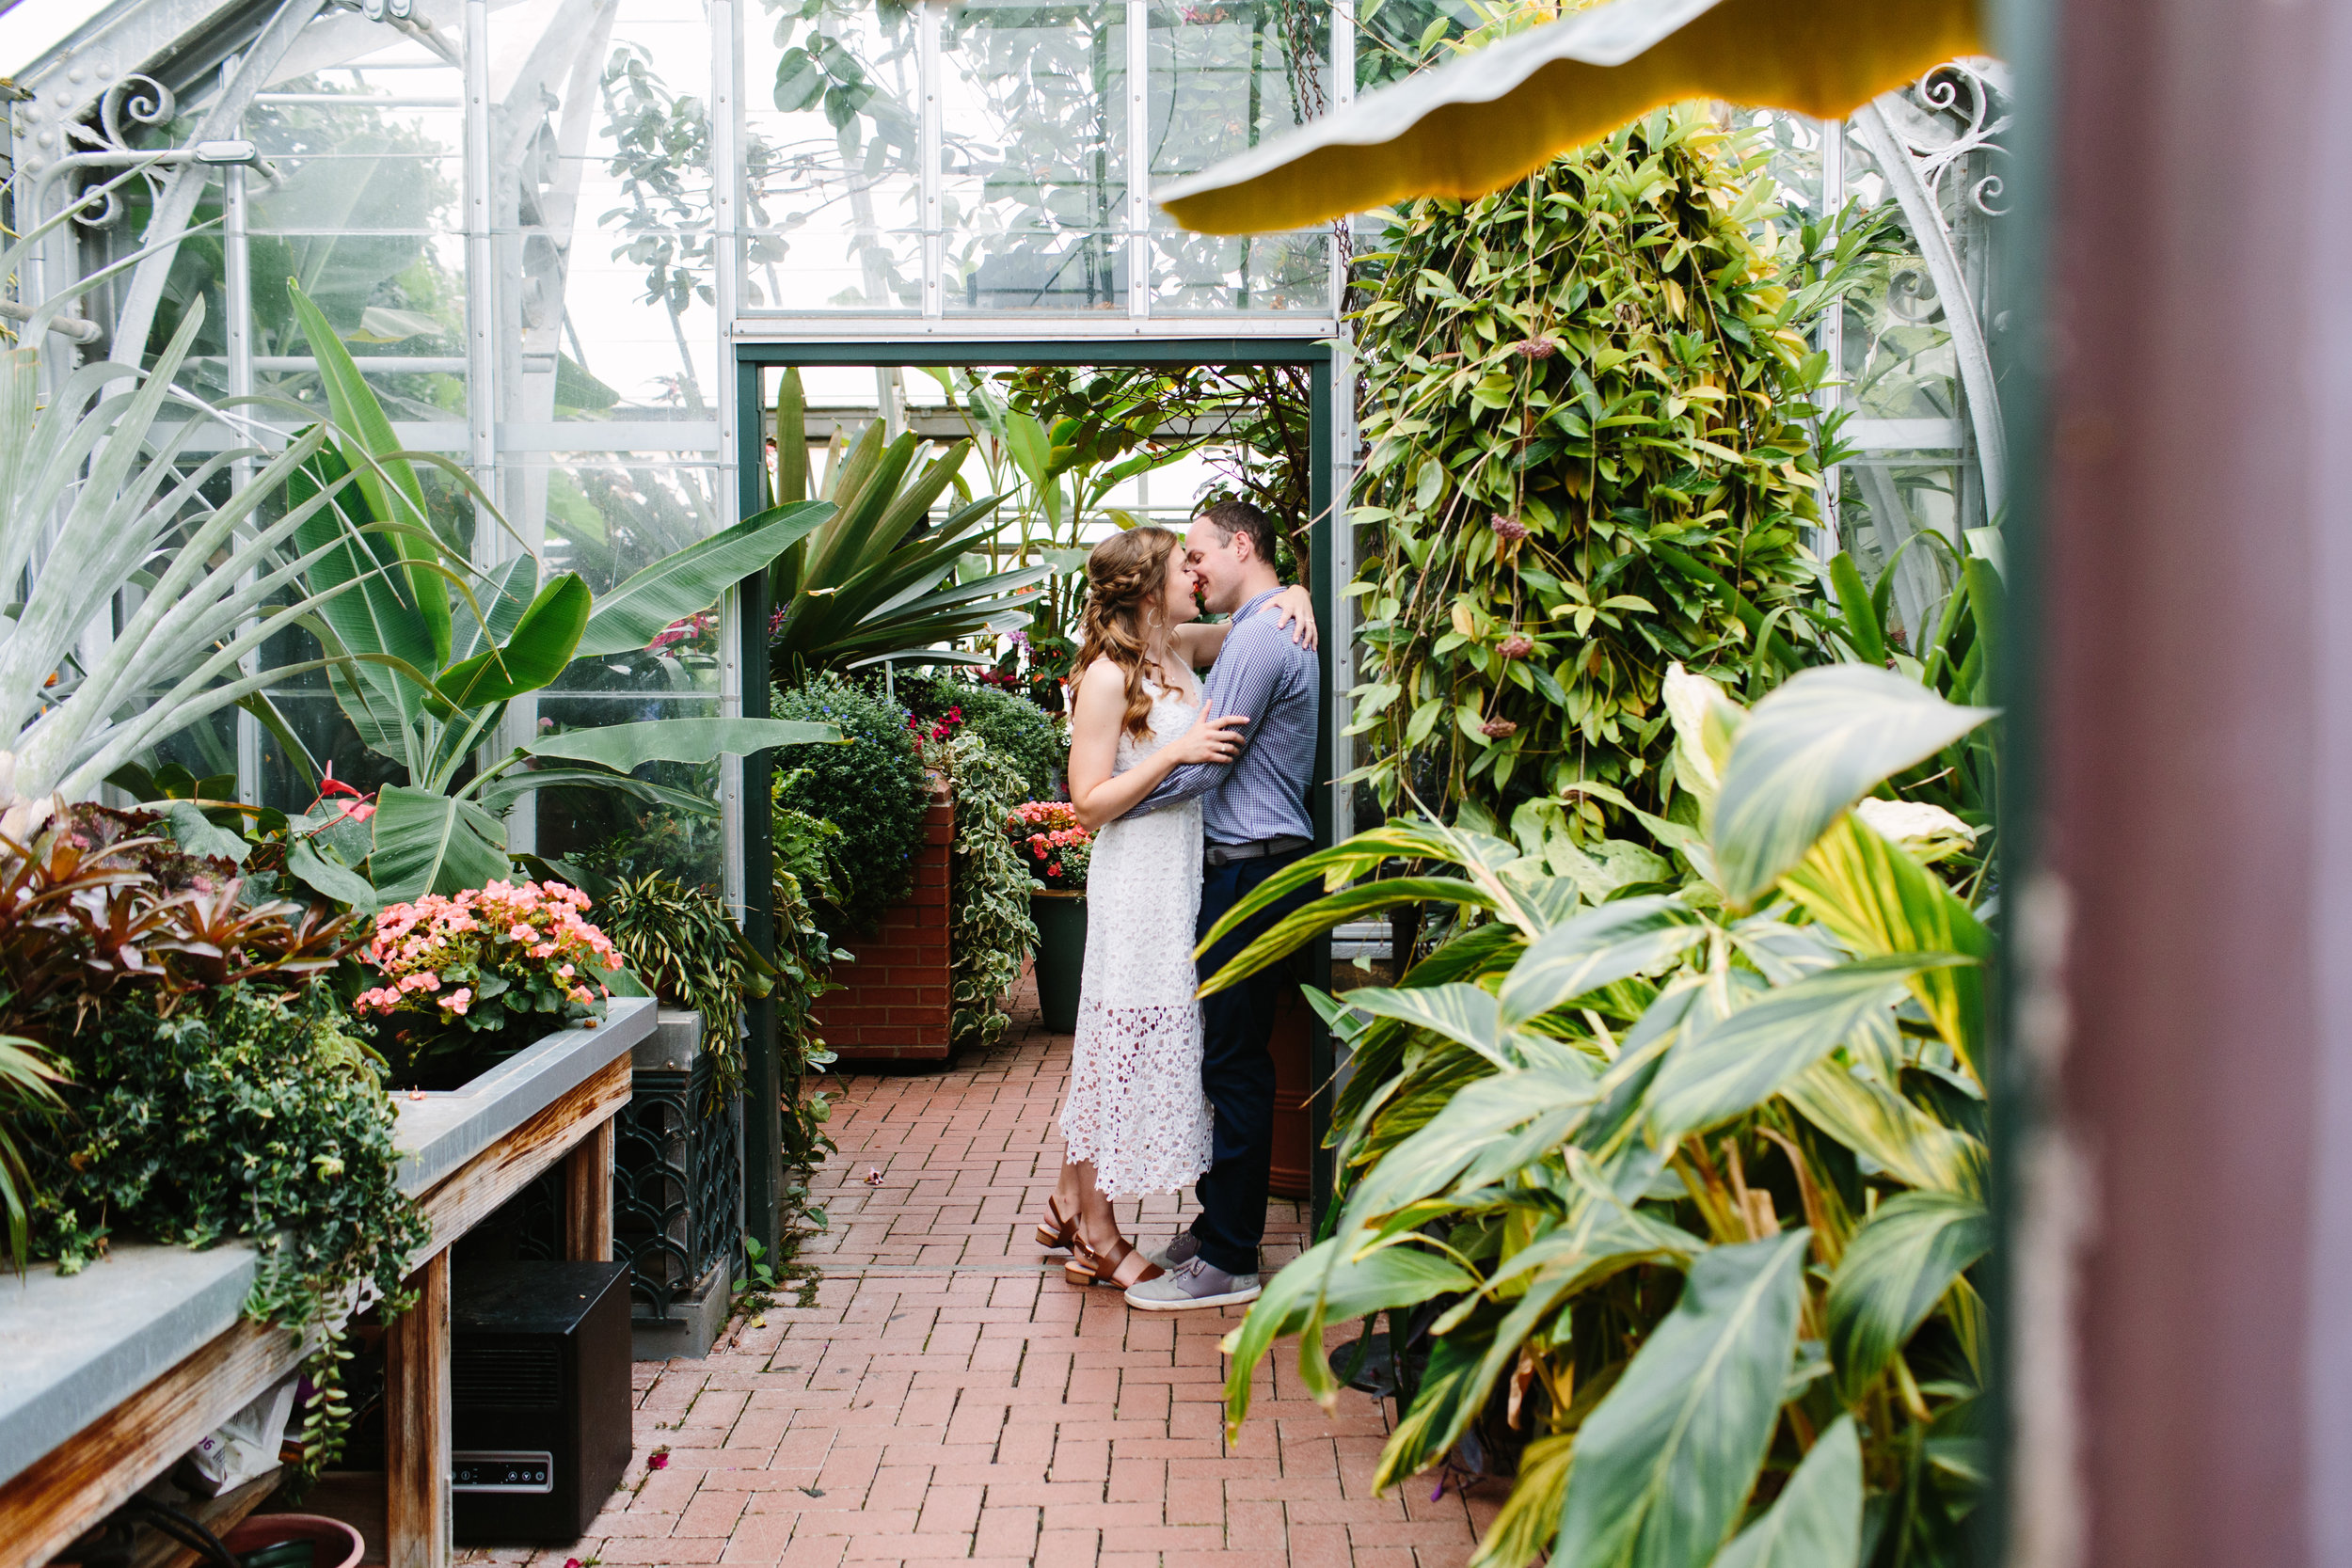 Biltmore Estate Engagement Session // Suzy Collins Photography // Biltmore estates, poses, outdoor, intimate, ideas, outfits, country, mountains, unique, passion, young, engaged, creative, romantic, spring, rainy, editorial, natural light, light and airy, vibrant, inspiration, beautiful , black and white